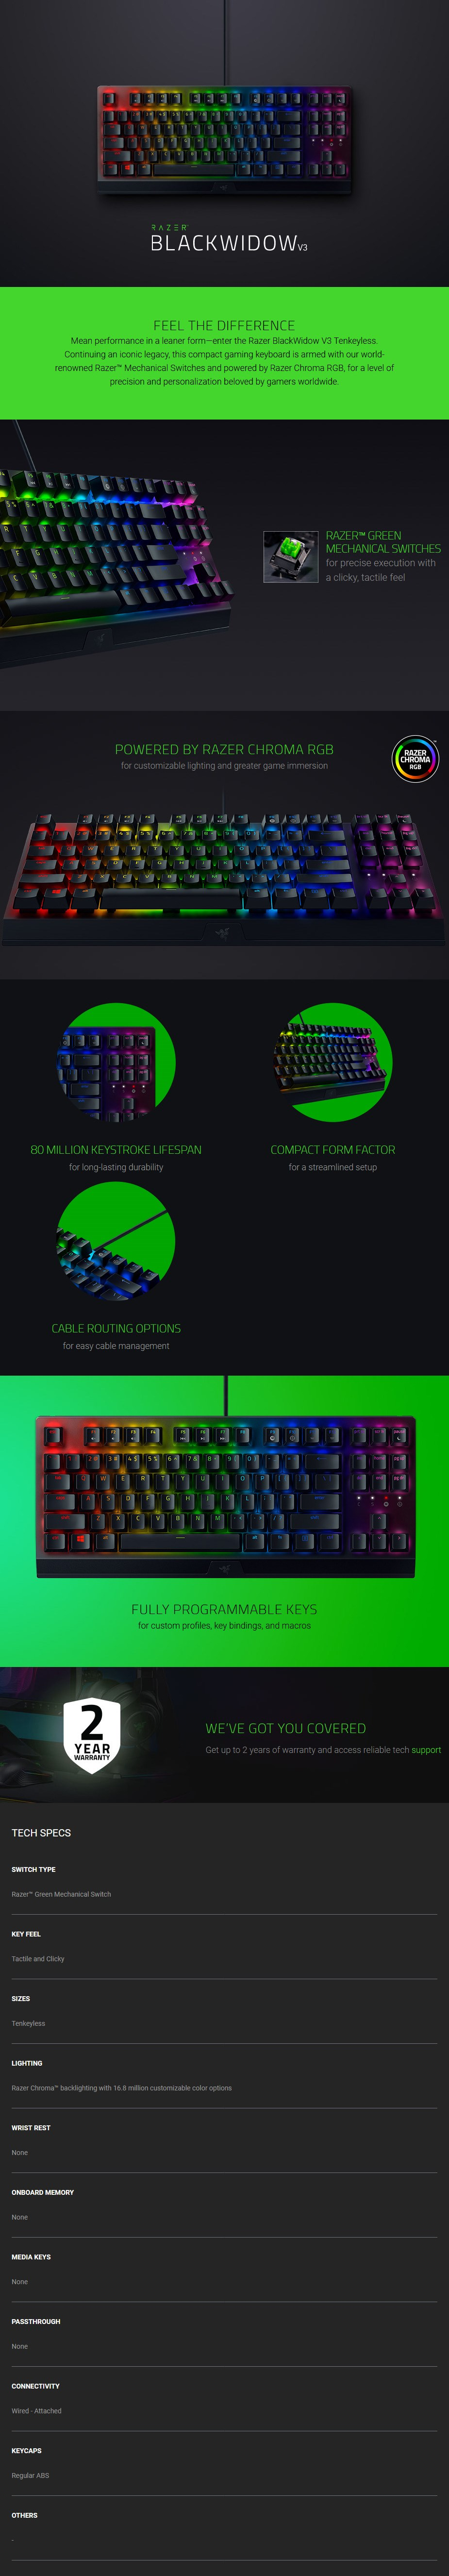 Razer BlackWidow V3 TKL Mechanical Gaming Keyboard - Green Switches - Overview 1